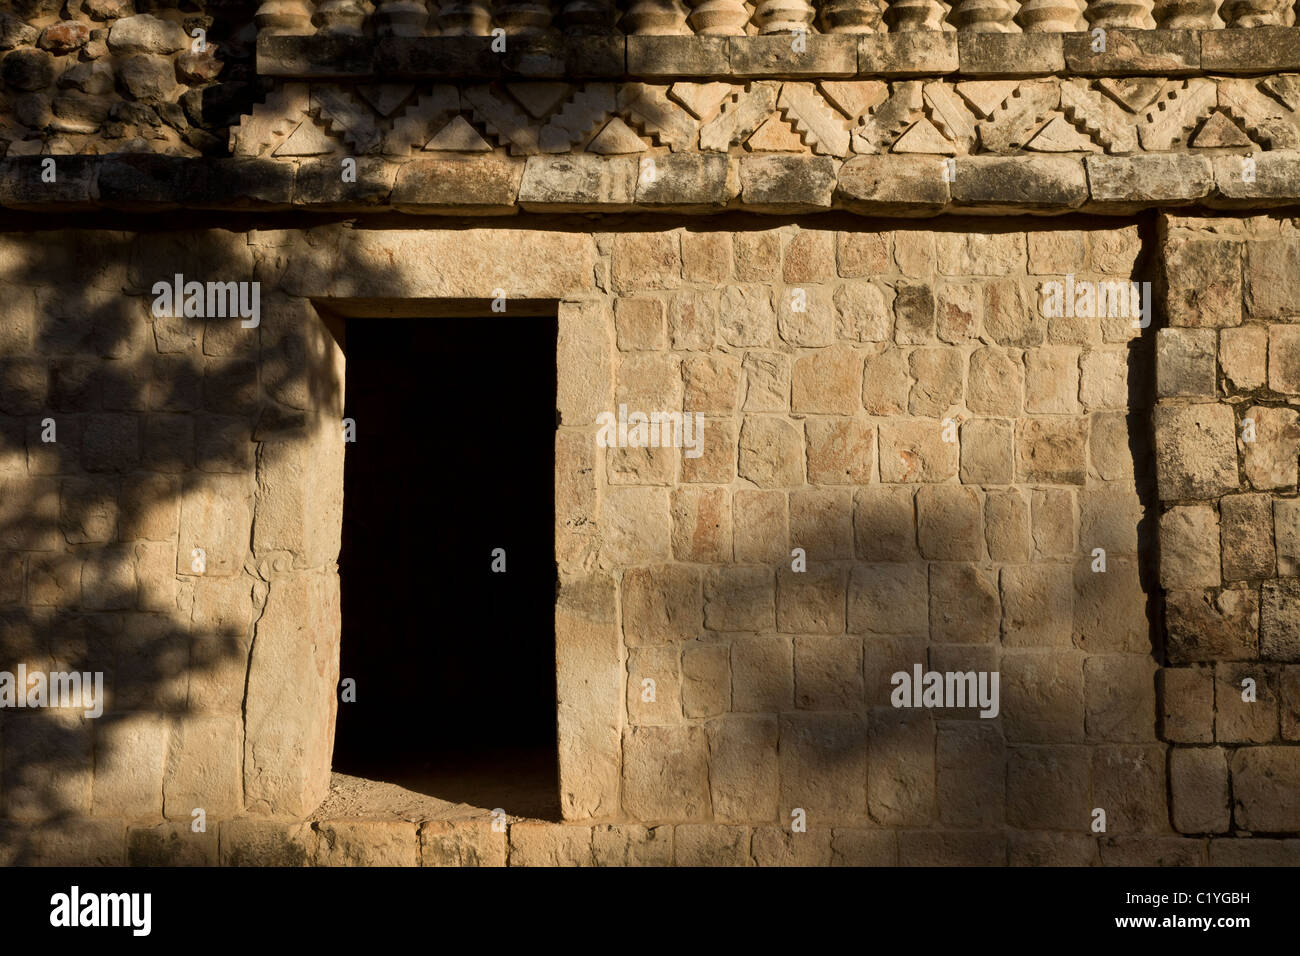 Palace detail in the Classic Maya ruins of Xlapak (Old Walls) along the Puuc Route, Yucatán Peninsula, Mexico. - Stock Image